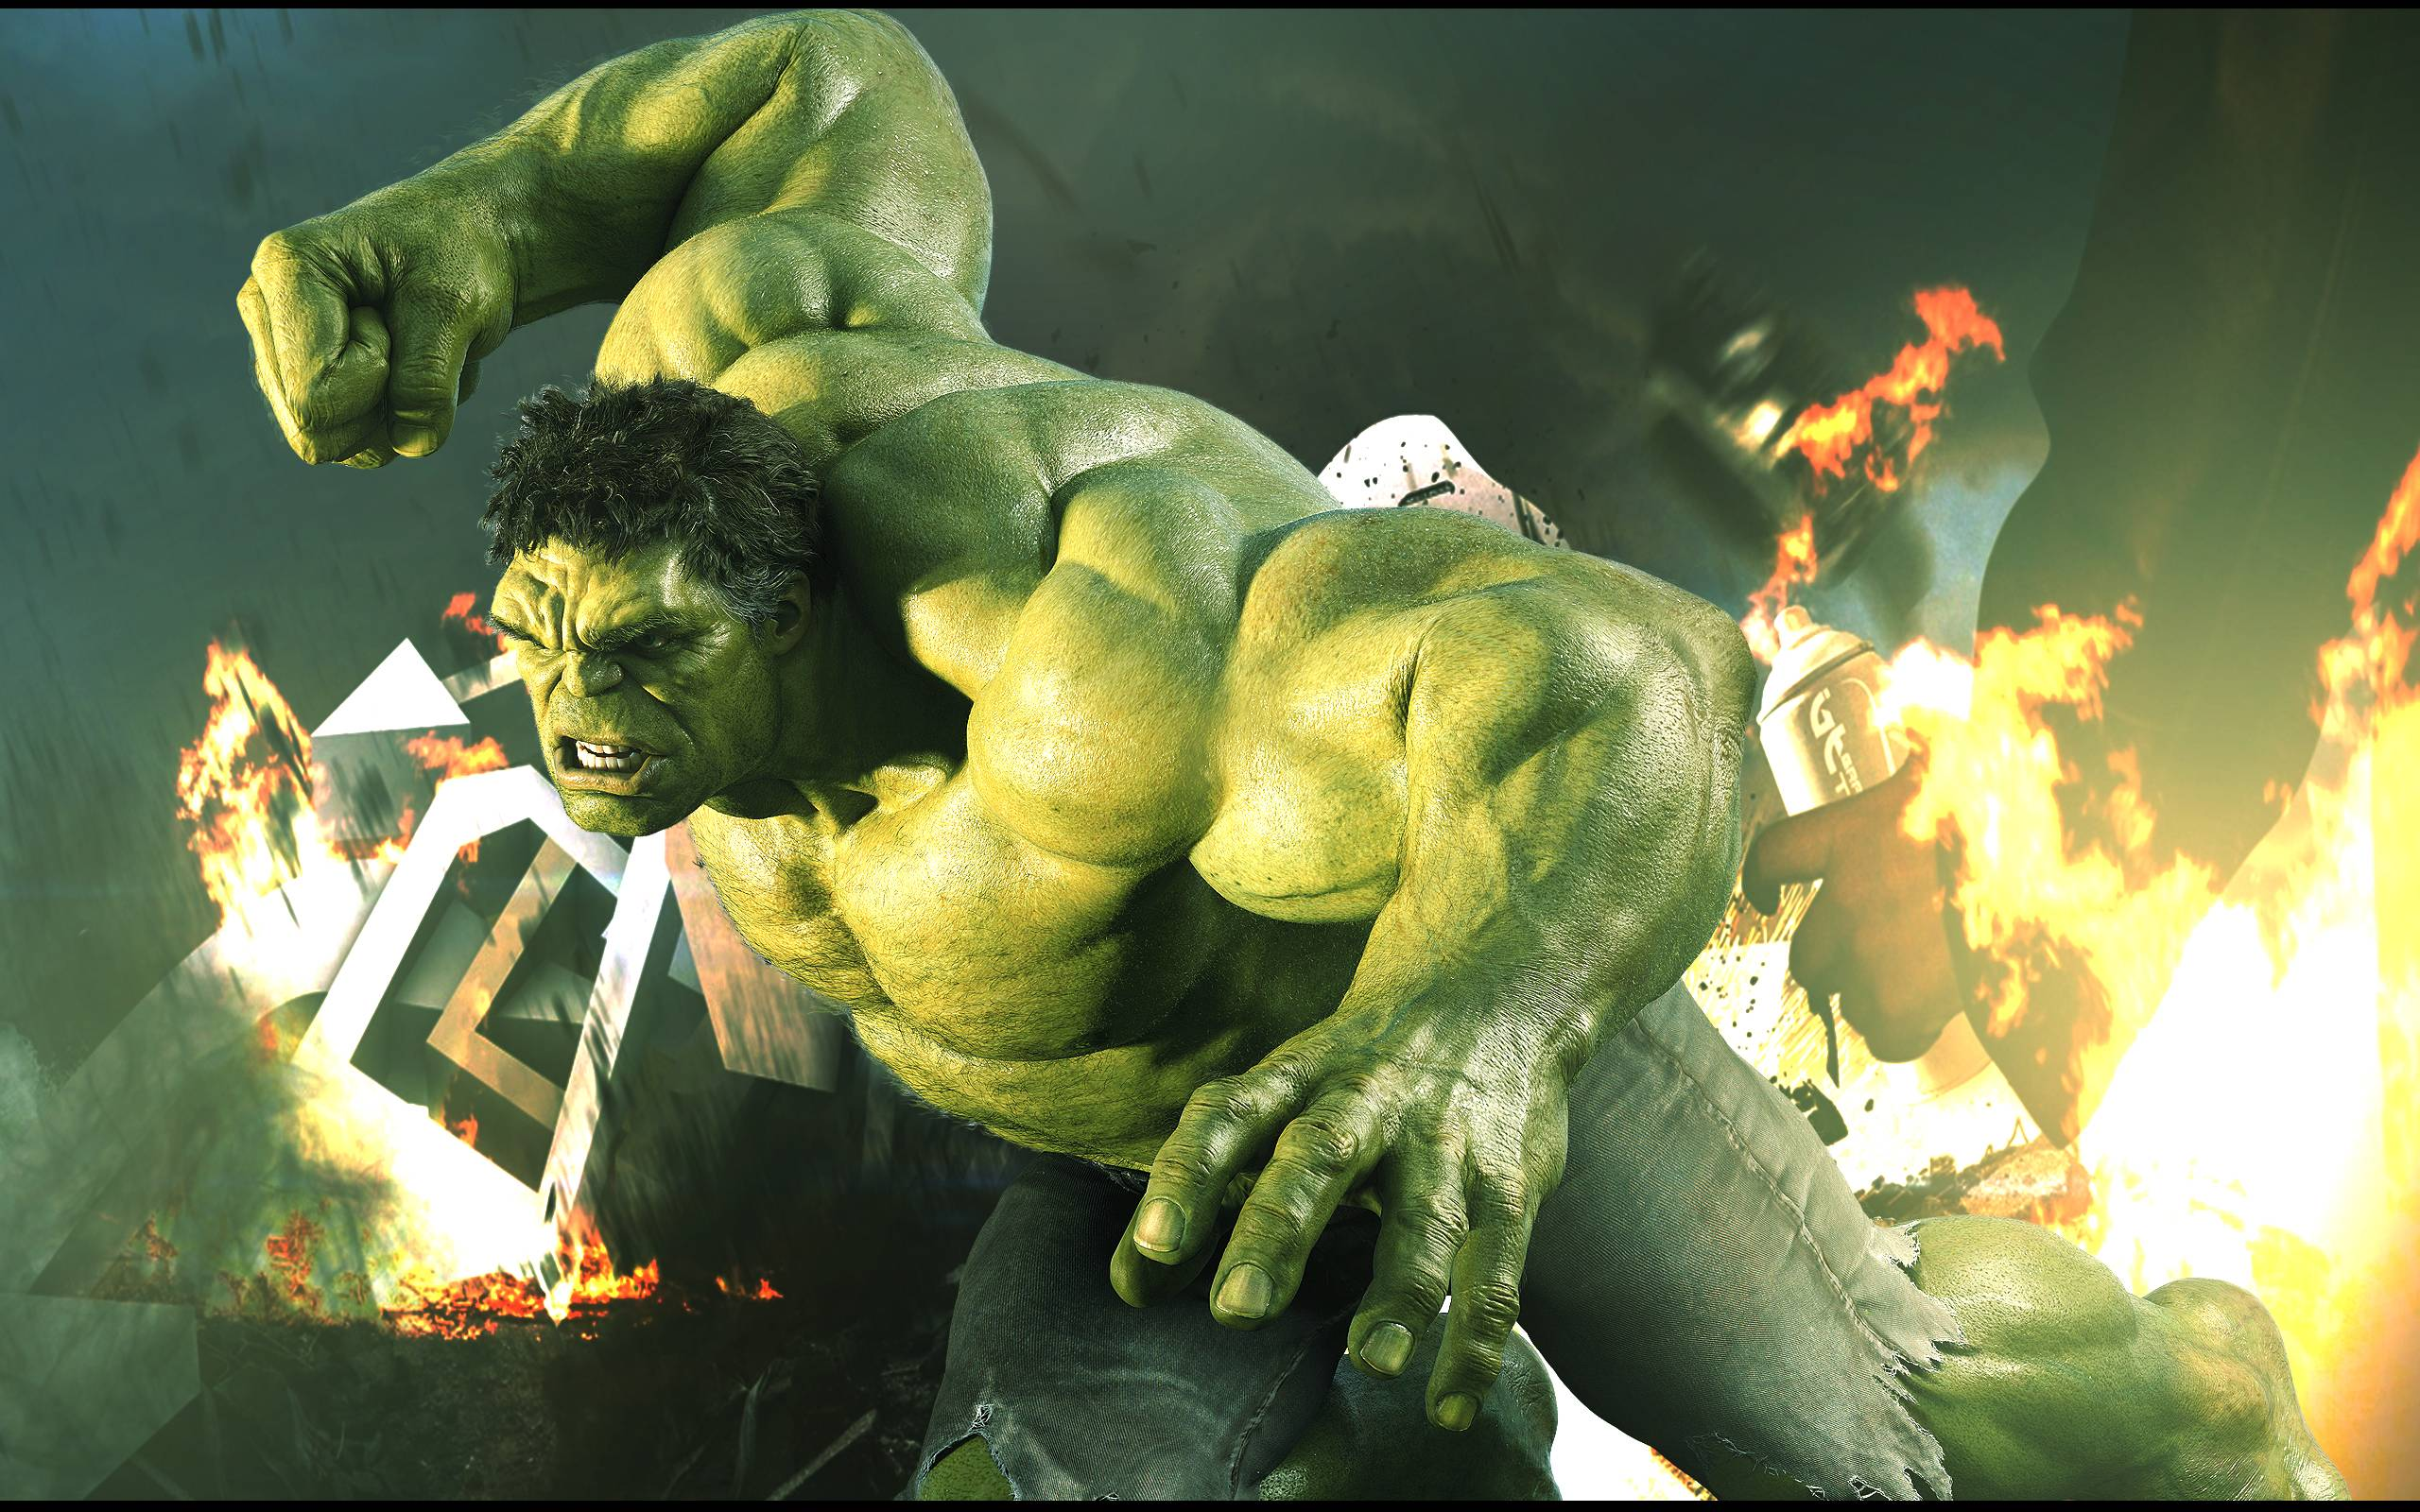 hulk backgrounds free download wallpapers backgrounds images